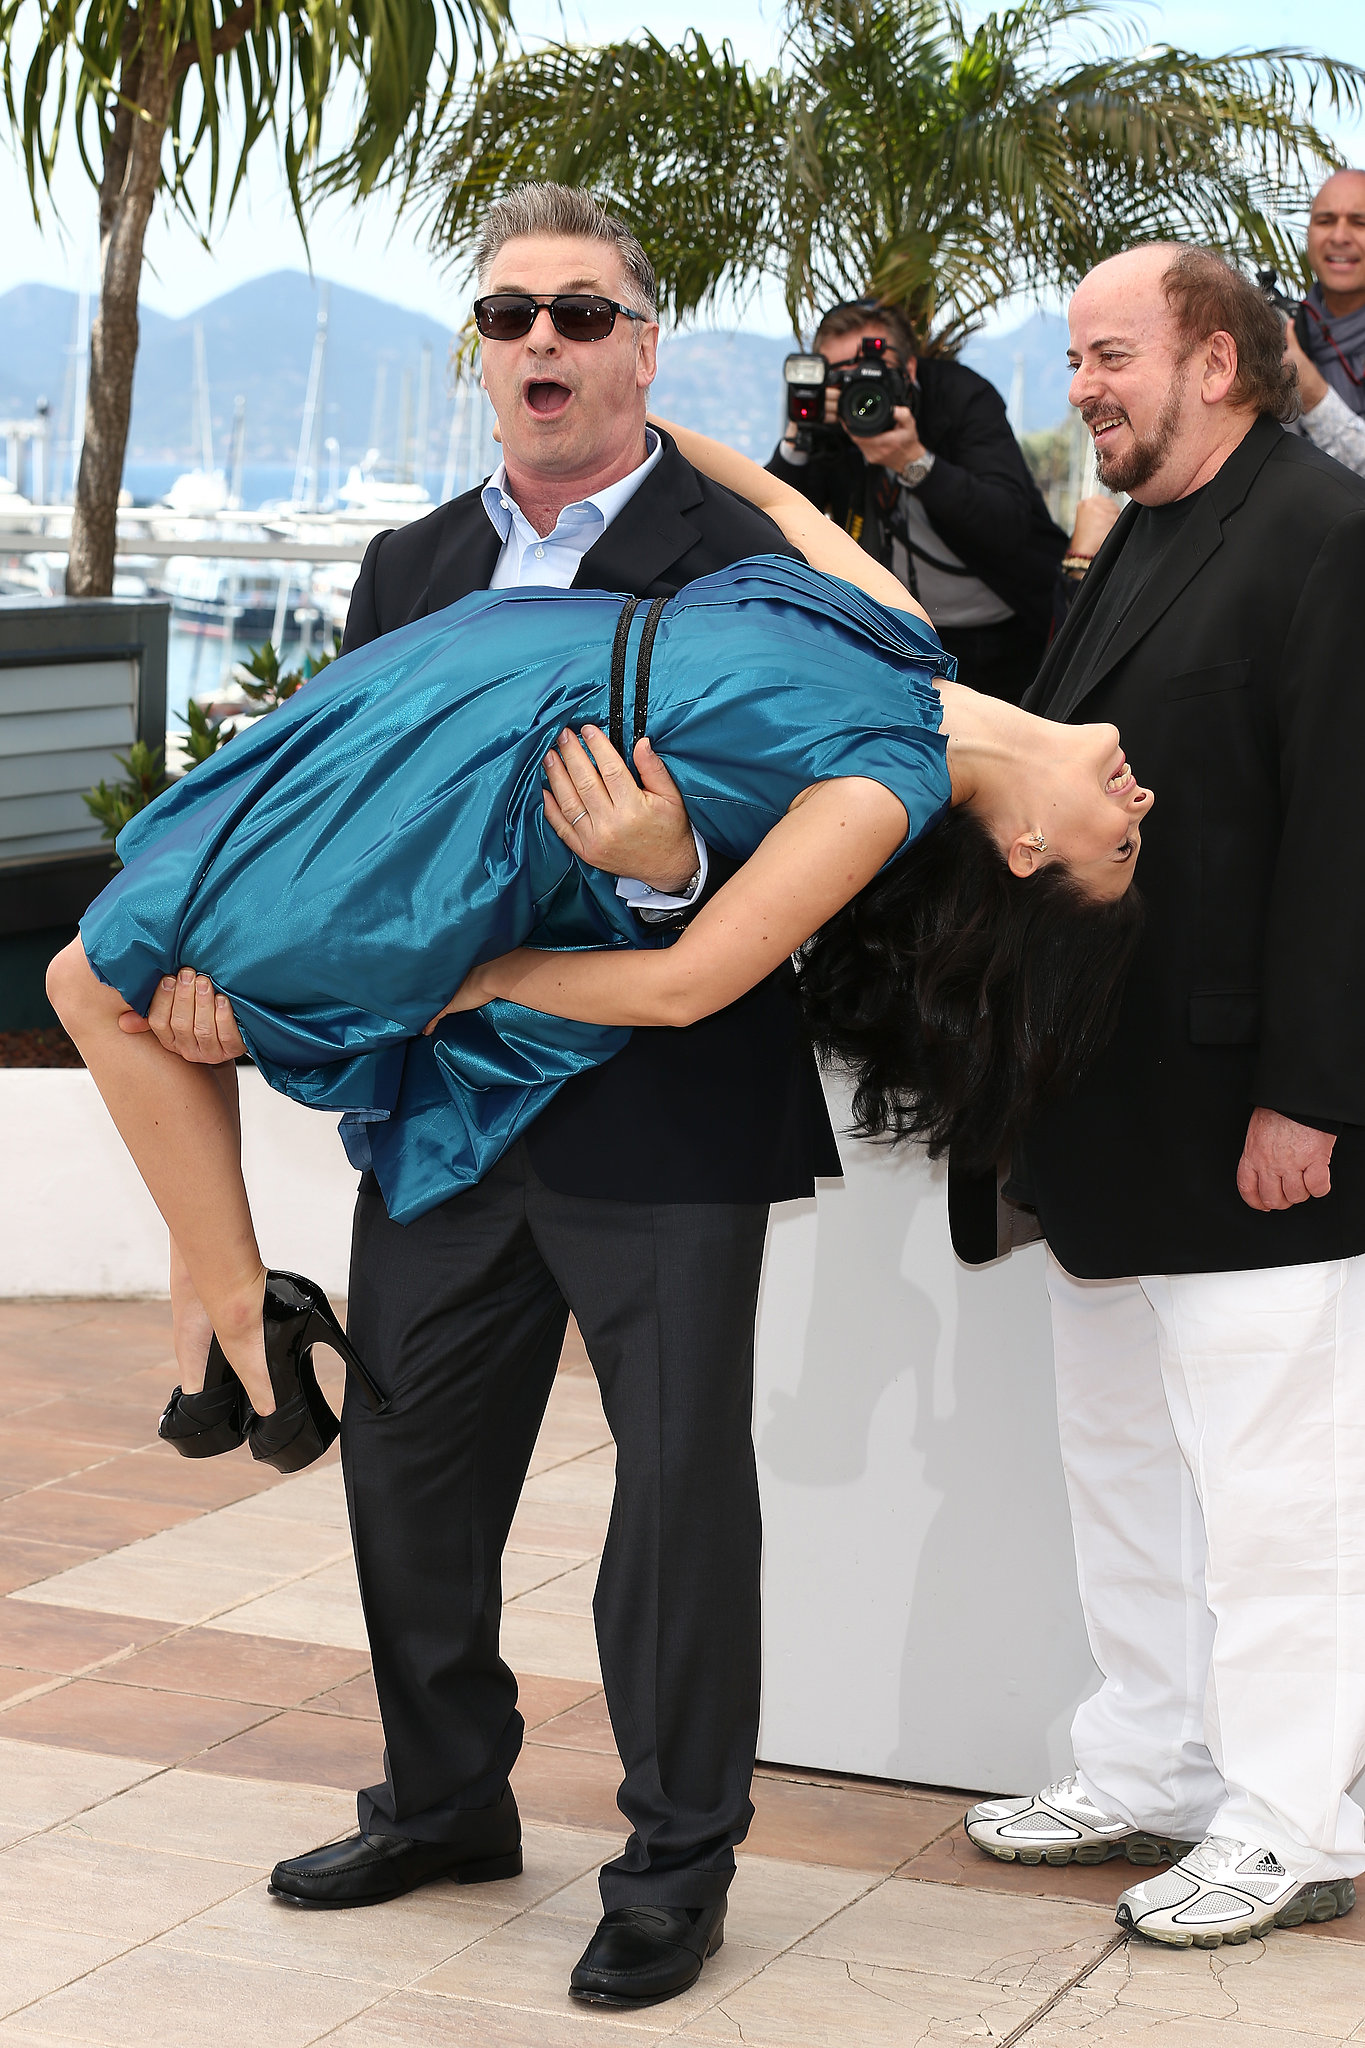 Alec Baldwin picked up his pregnant wife, Hilaria Thomas, in Cannes.